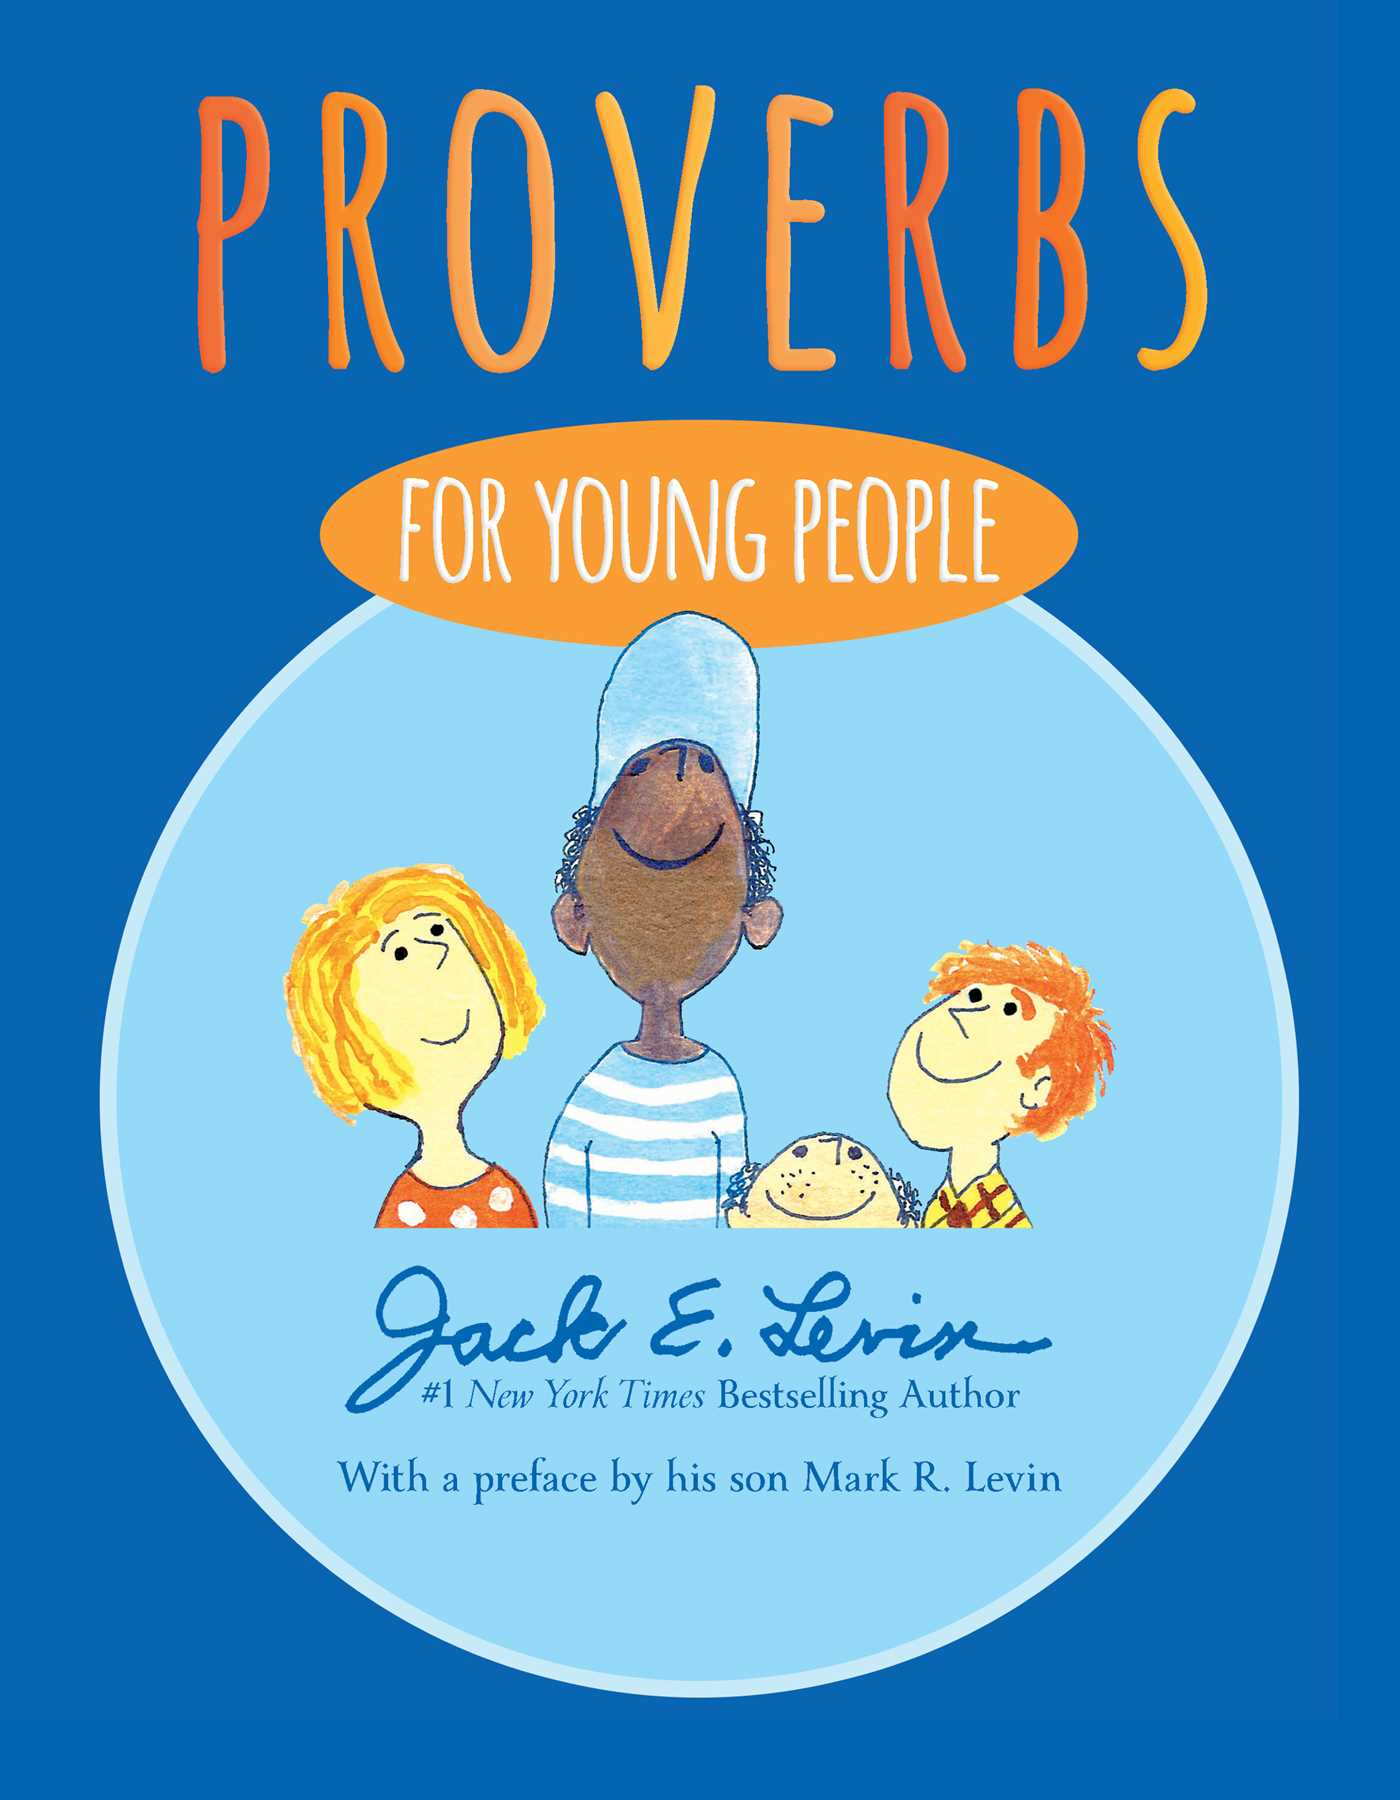 Proverbs for young people 9781481459464 hr